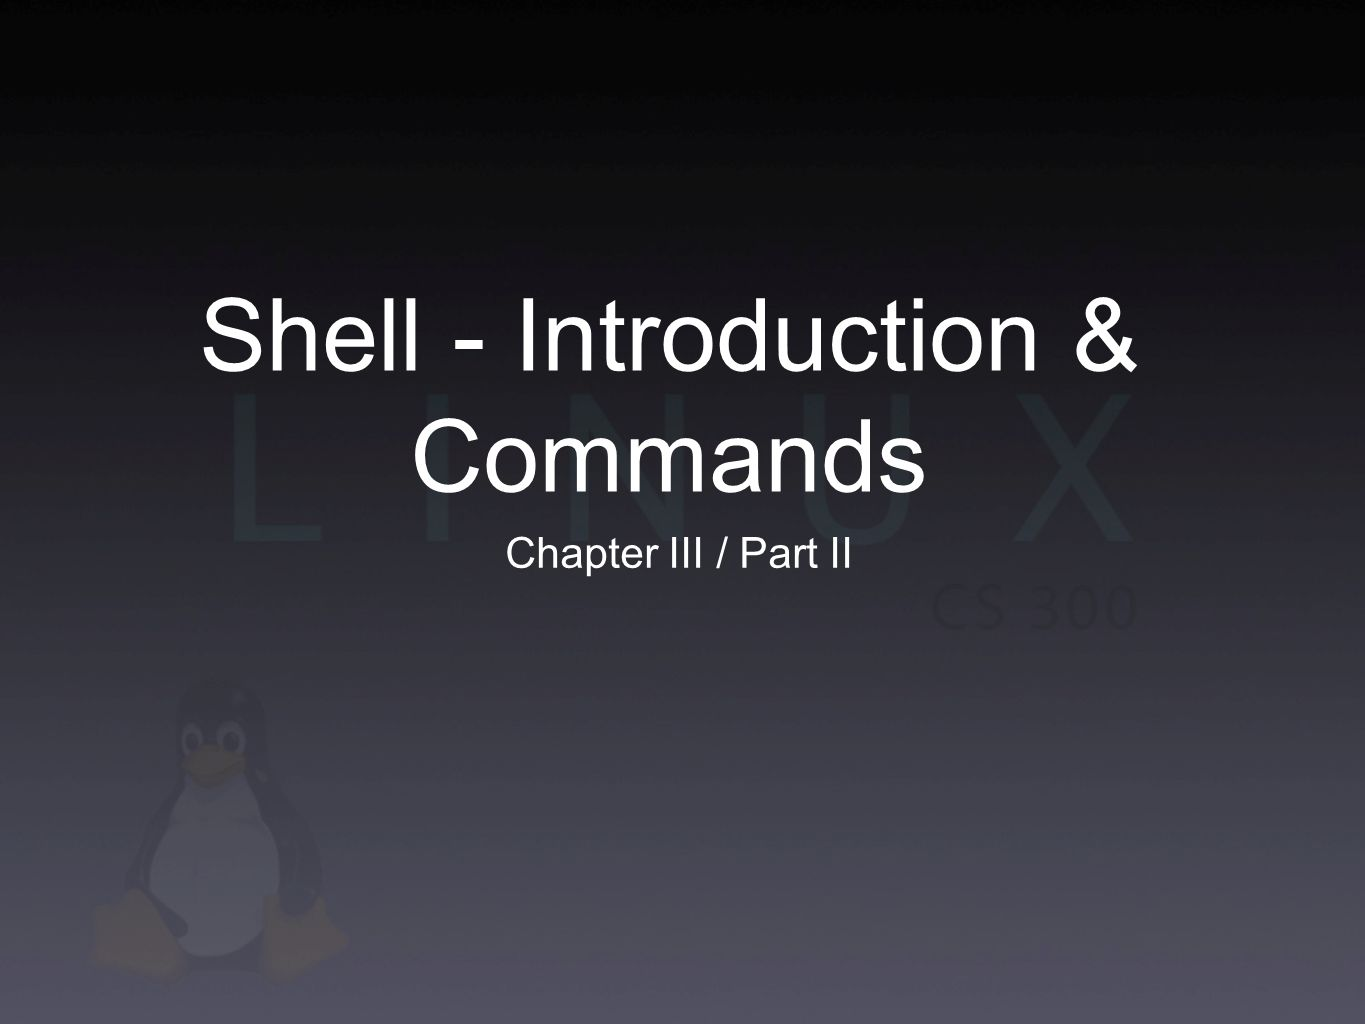 Shell - Introduction & Commands Chapter III / Part II